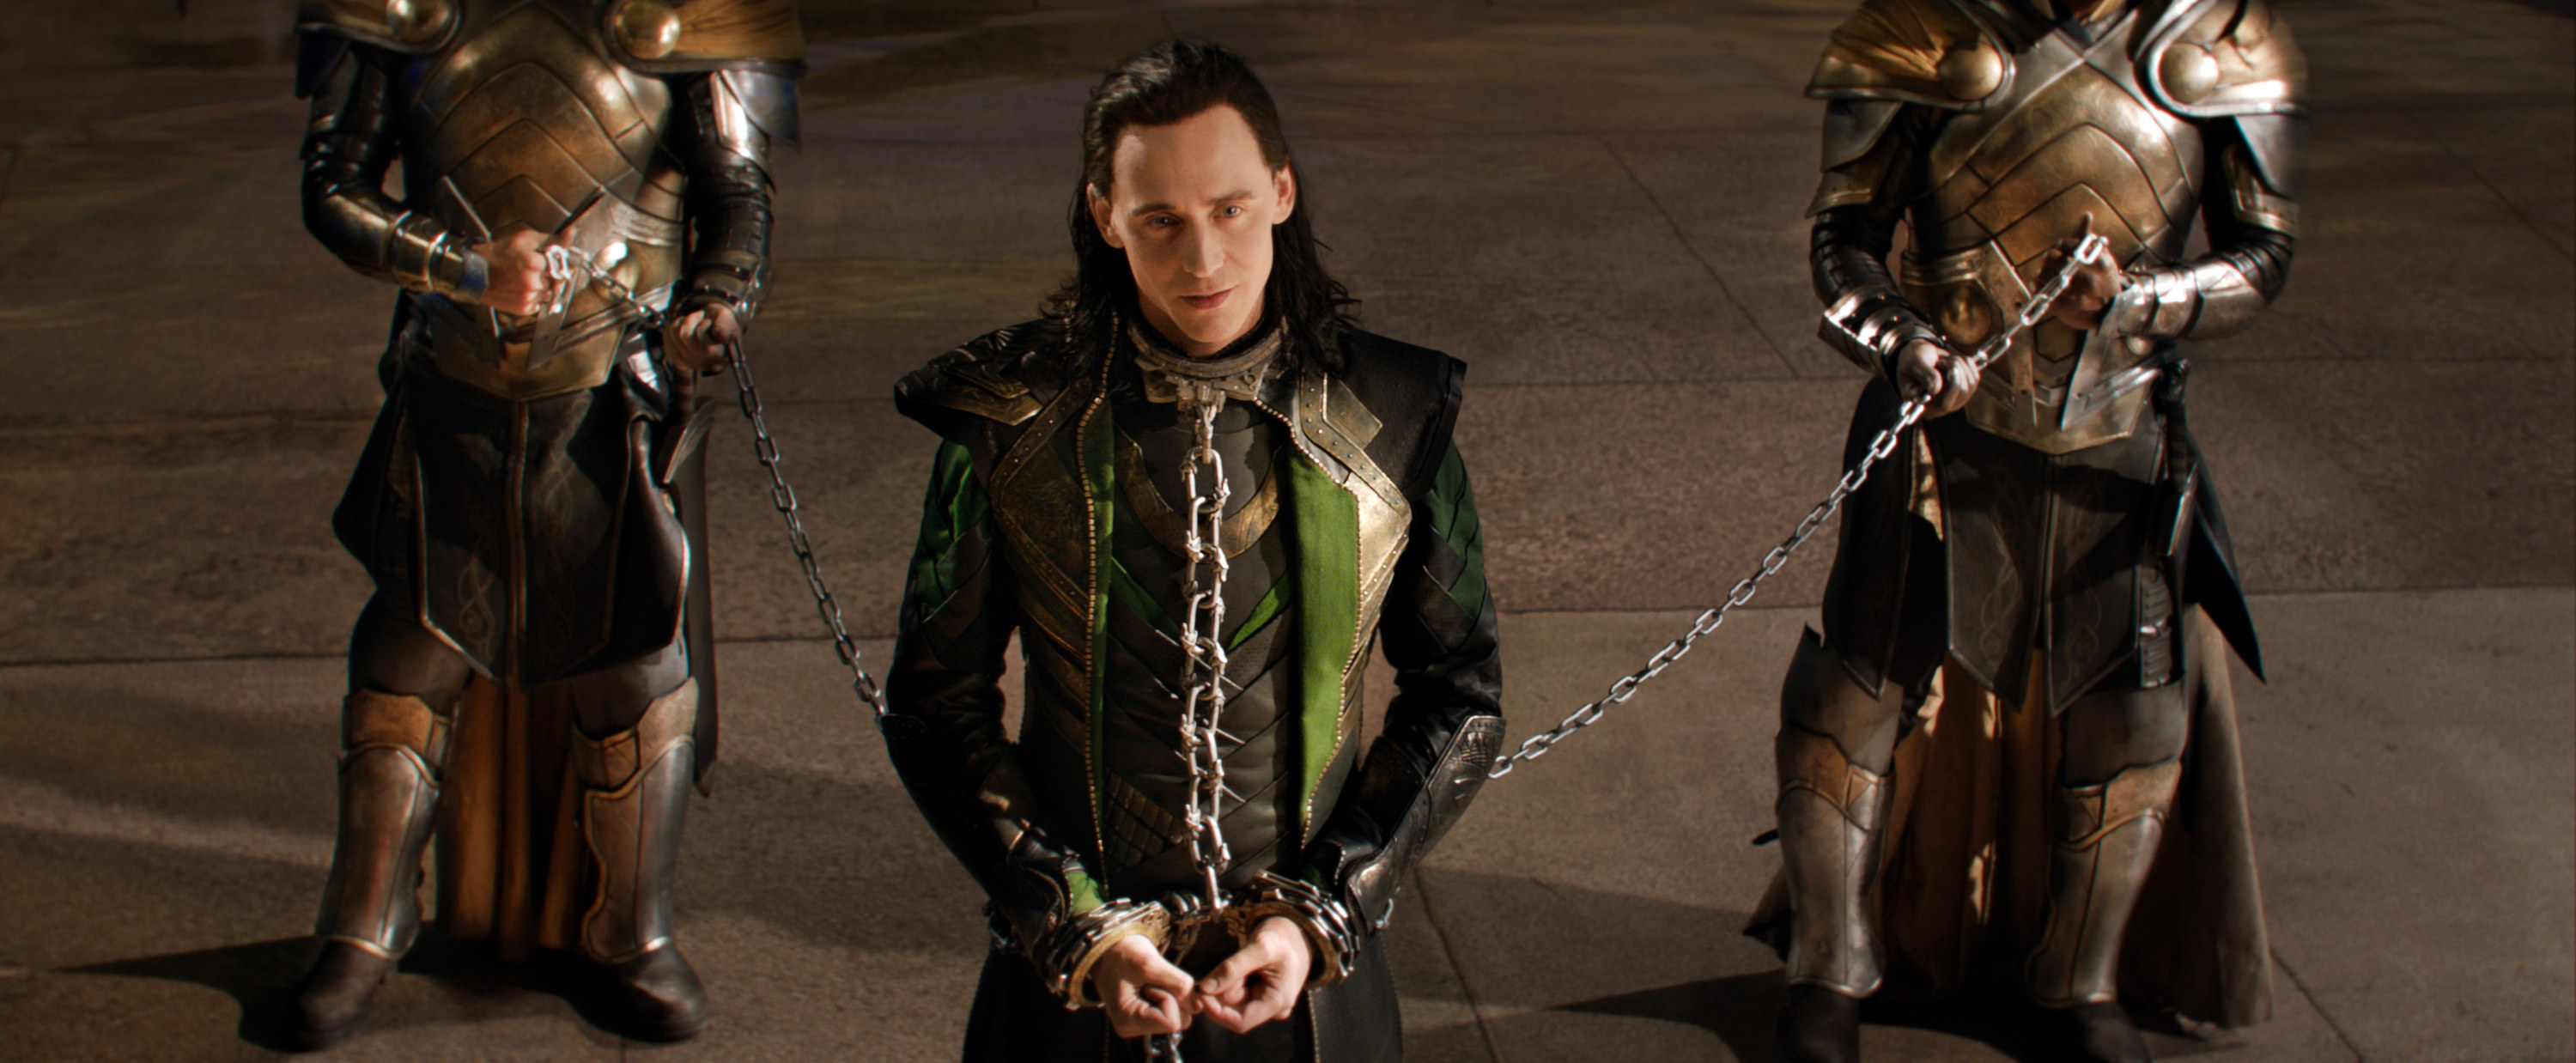 Loki standing in a throne room chained to two guards